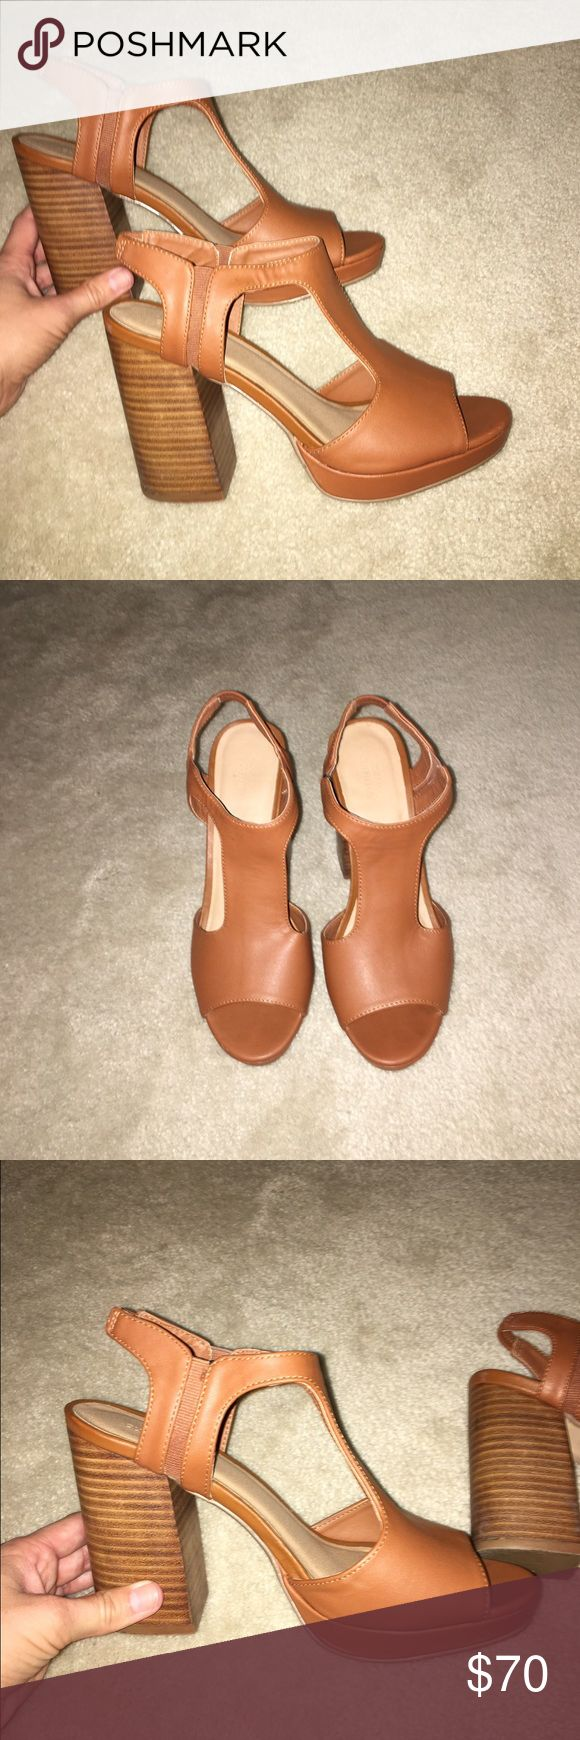 Urban outfitters heels! Light brown heels, so easy to walk in and only worn once! Slightly too small on me otherwise I would keep them! Great condition, definitely willing to negotiate! Urban Outfitters Shoes Heels